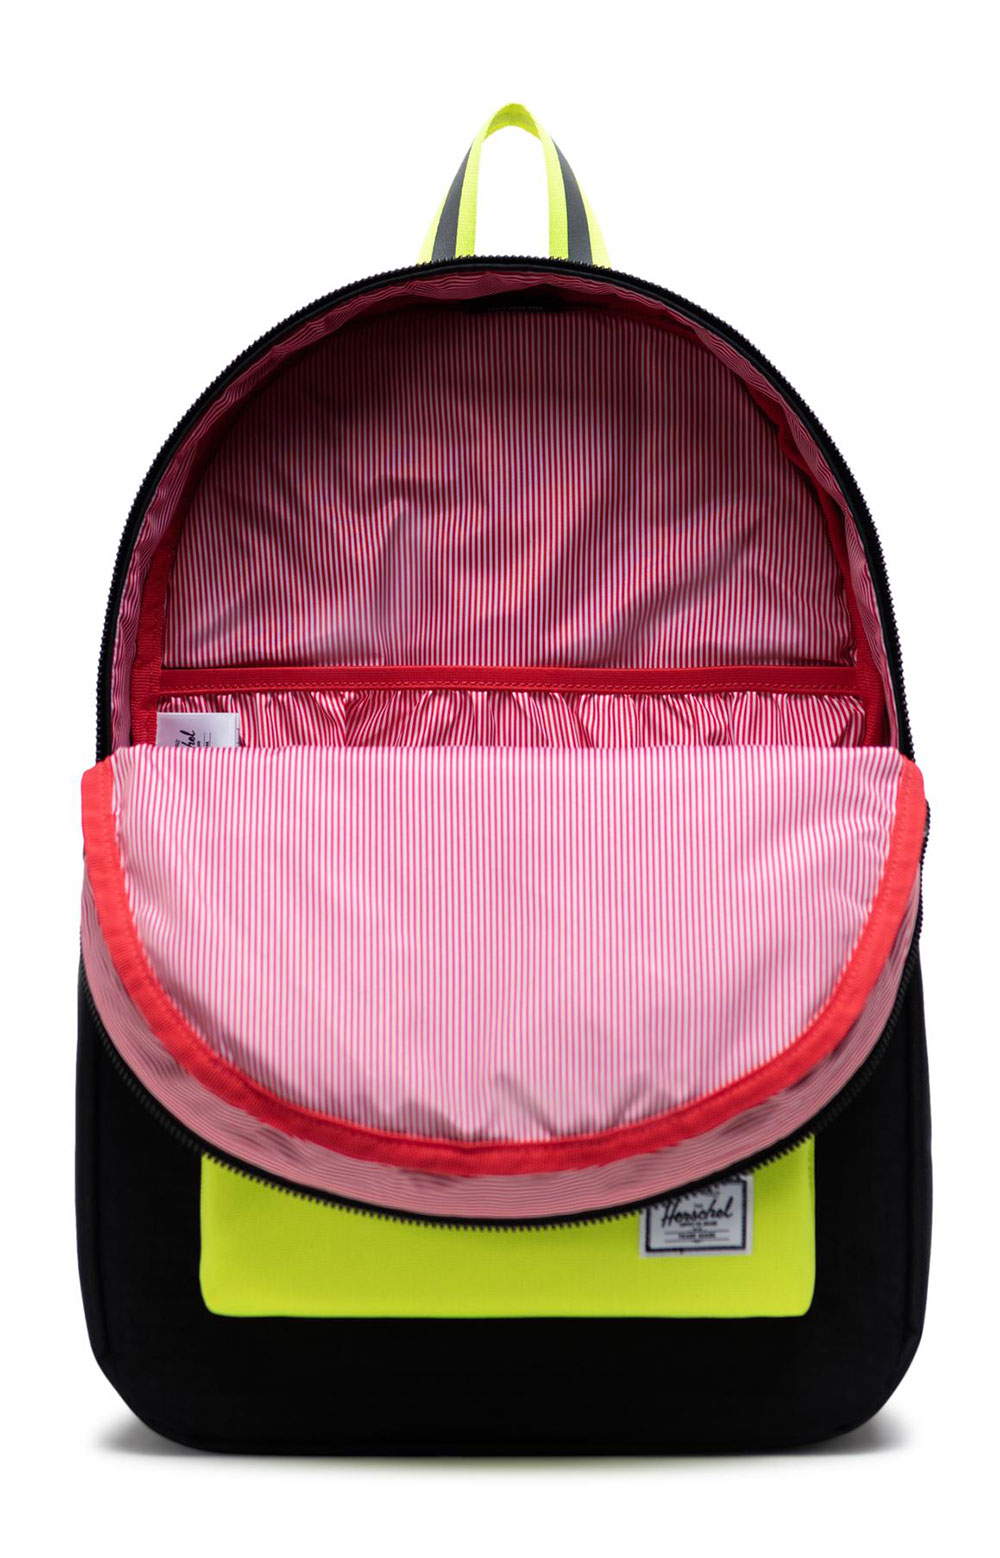 Settlement Backpack - Black Enzyme Ripstop/Black/Safety Yellow 3